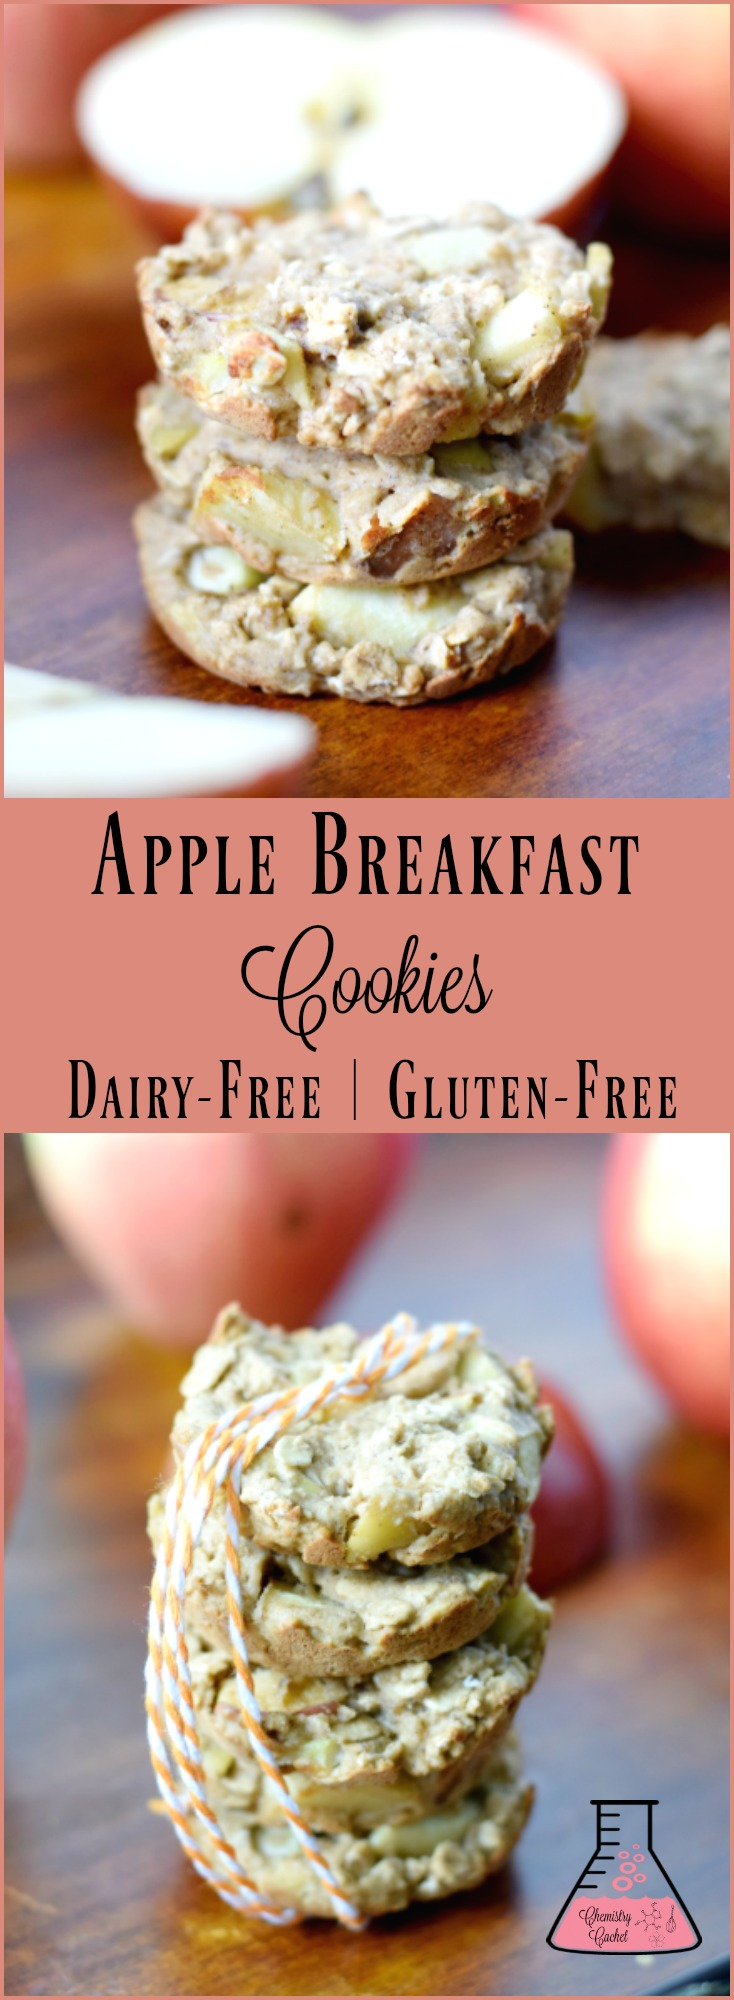 Delicious Apple Breakfast Cookies perfect for on the go! This apple cookie recipe is so easy, and it's dairy-free with gluten-free options on chemistrycachet.com